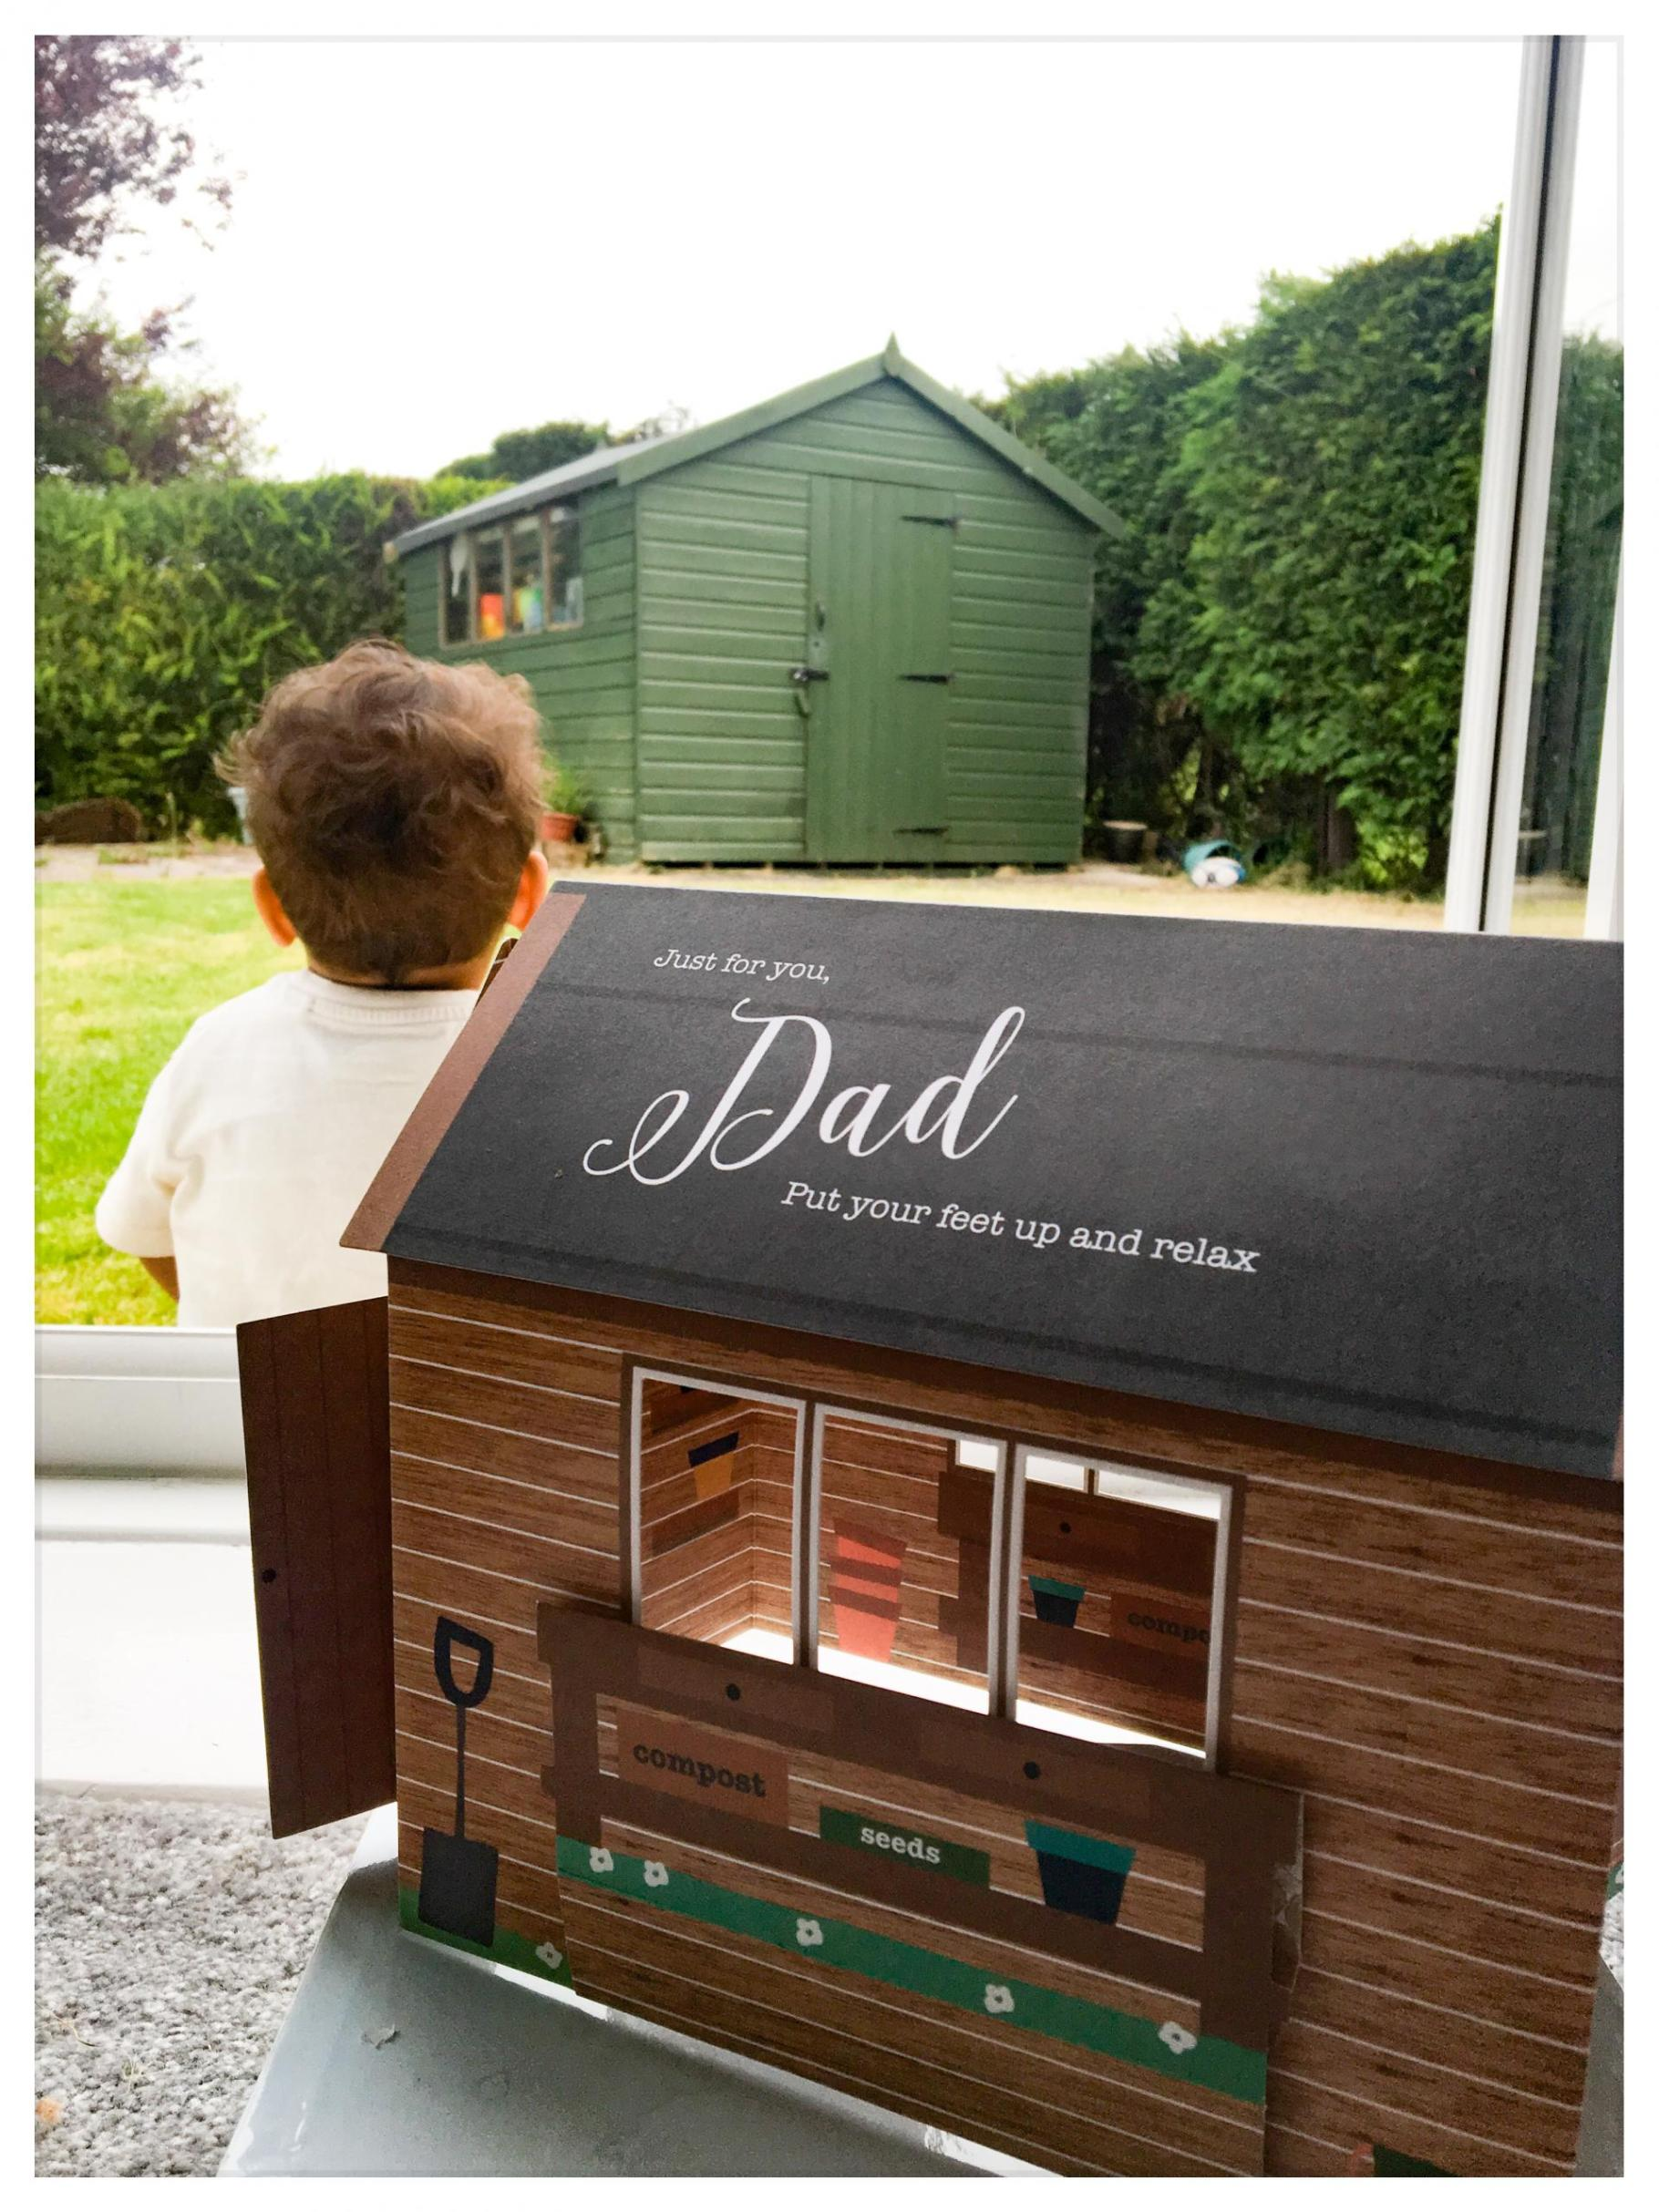 5 Reasons Hallmark and Tesco have your gifts for dad wrapped up